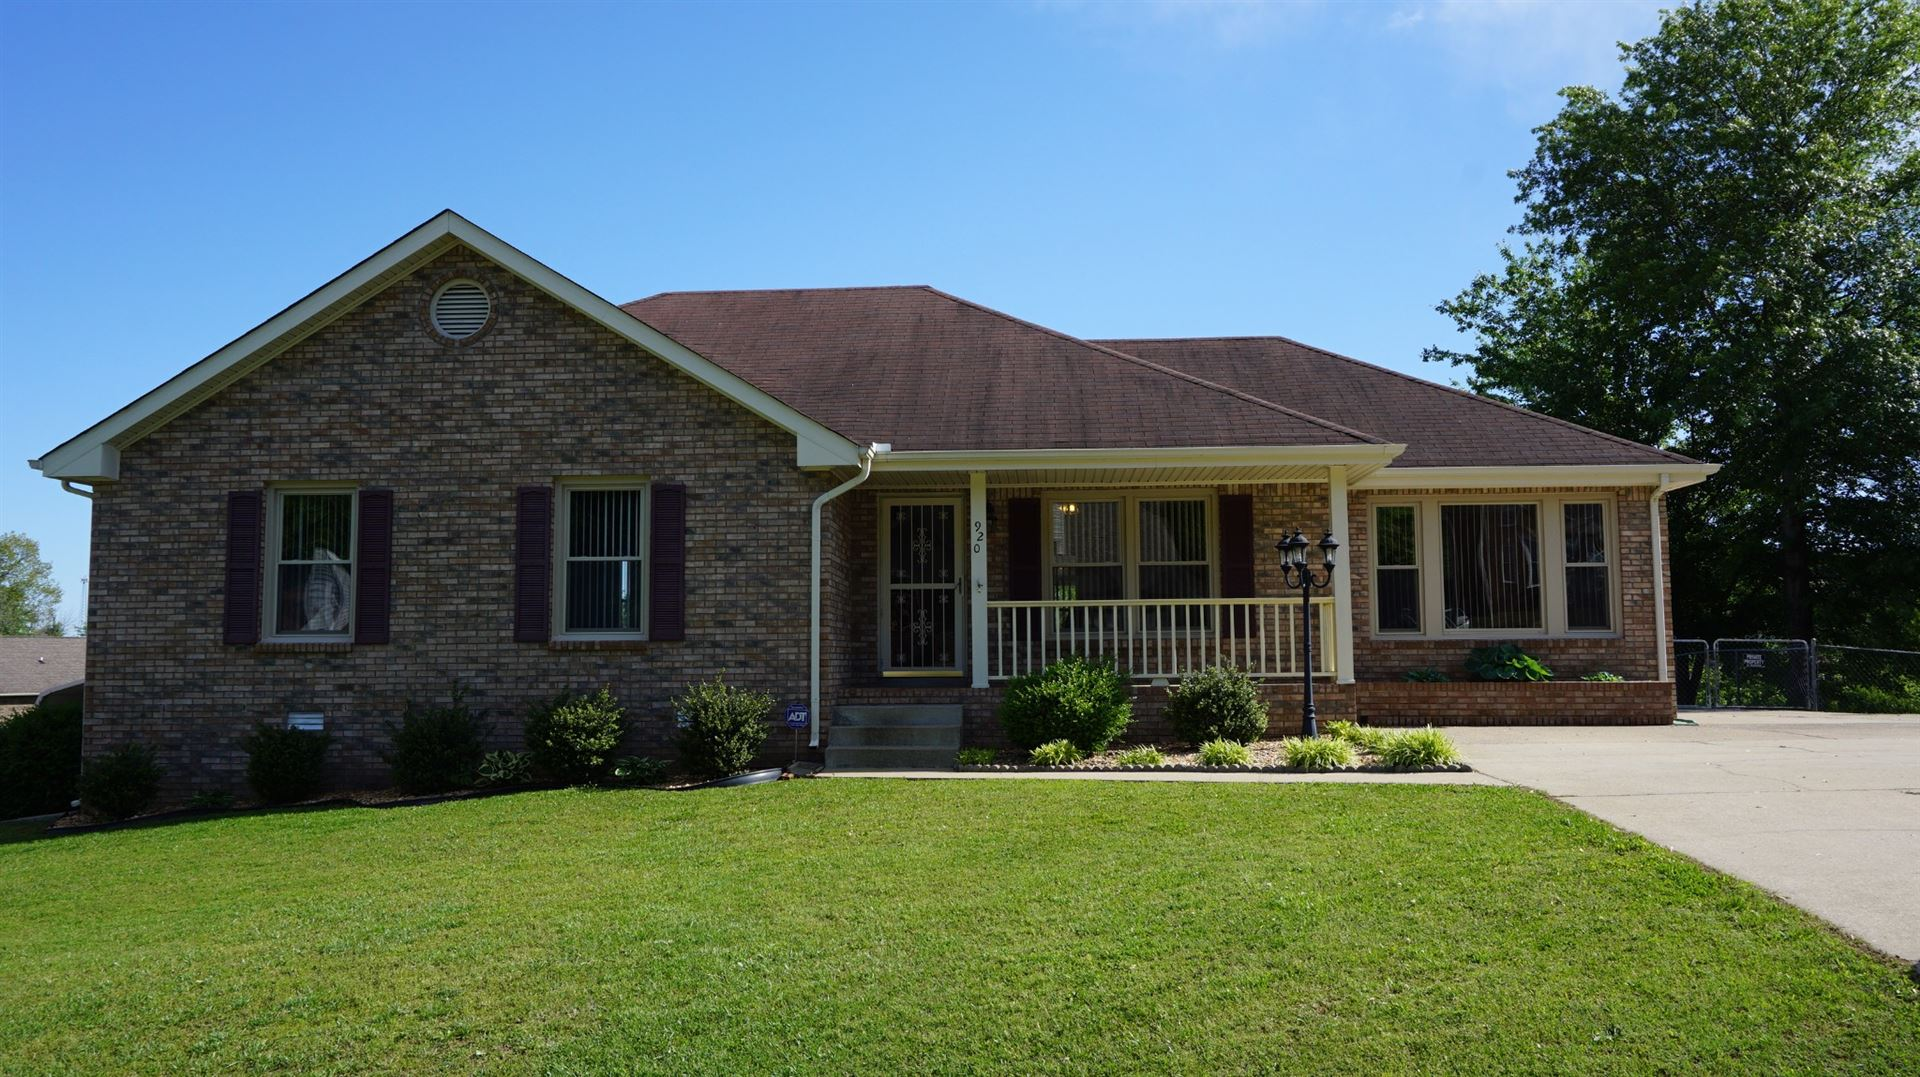 920 Sable Dr, Clarksville, TN 37042 - MLS#: 2253104